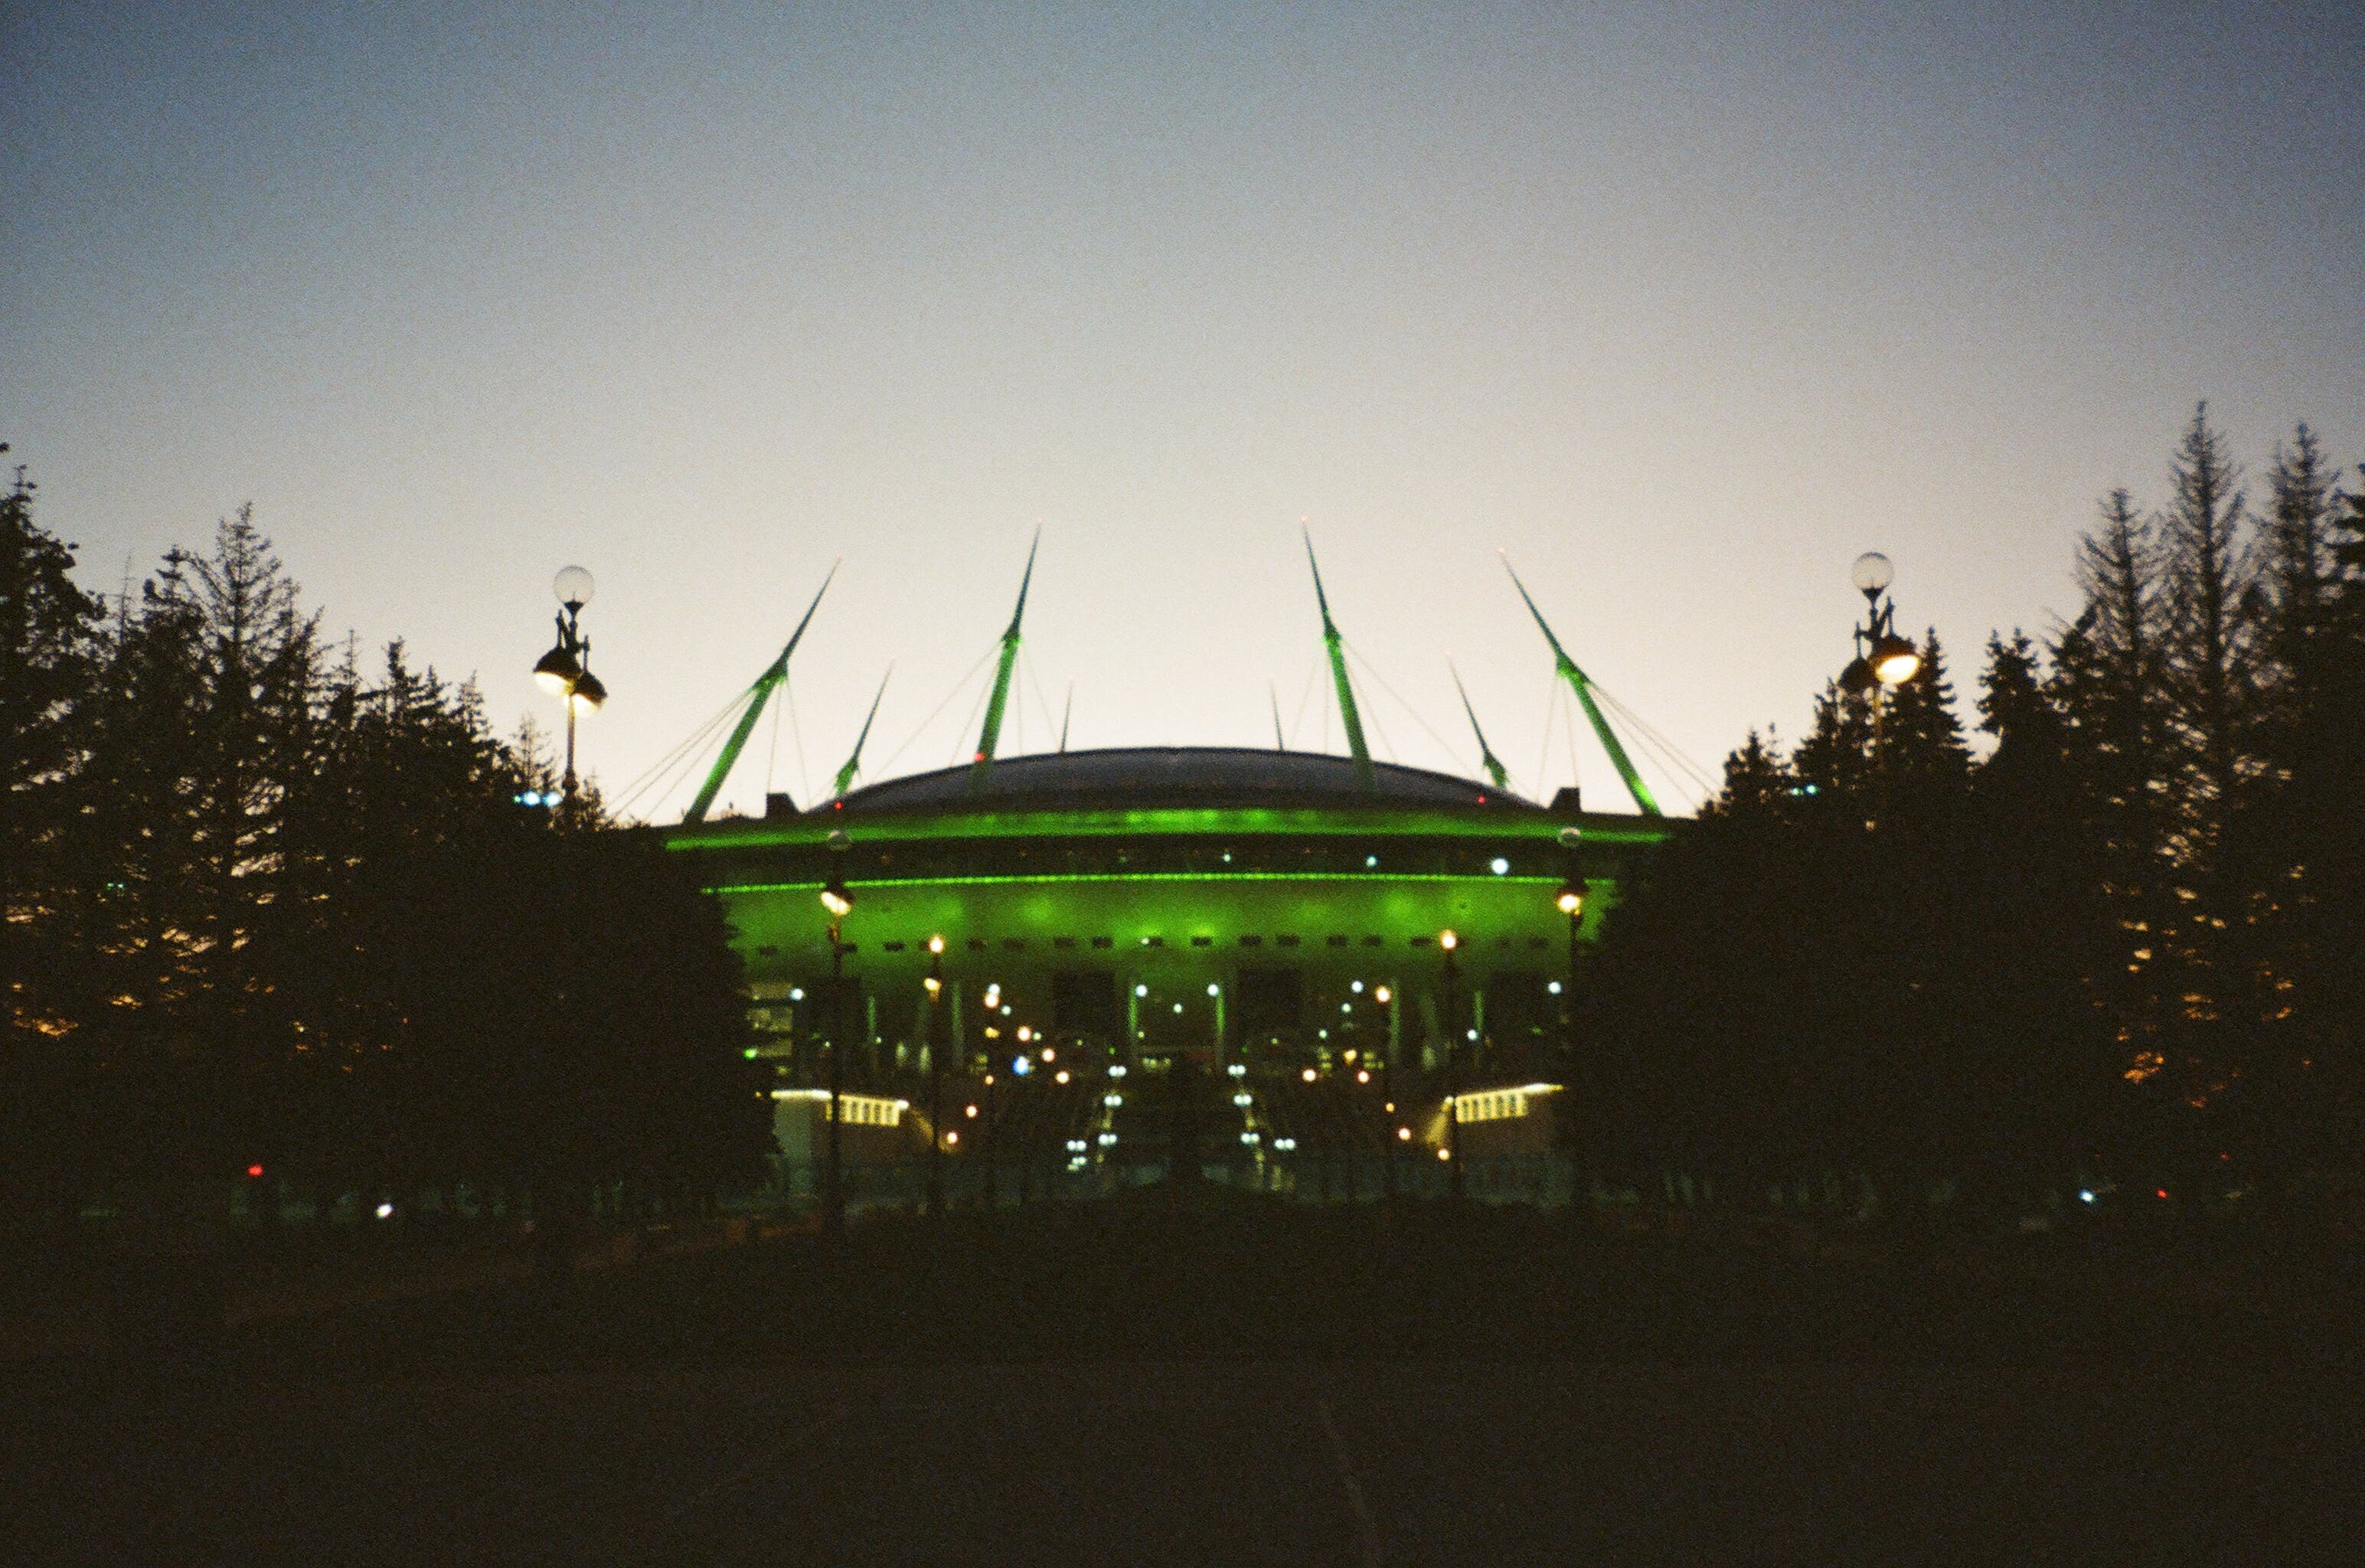 Green Stadium in Between Trees